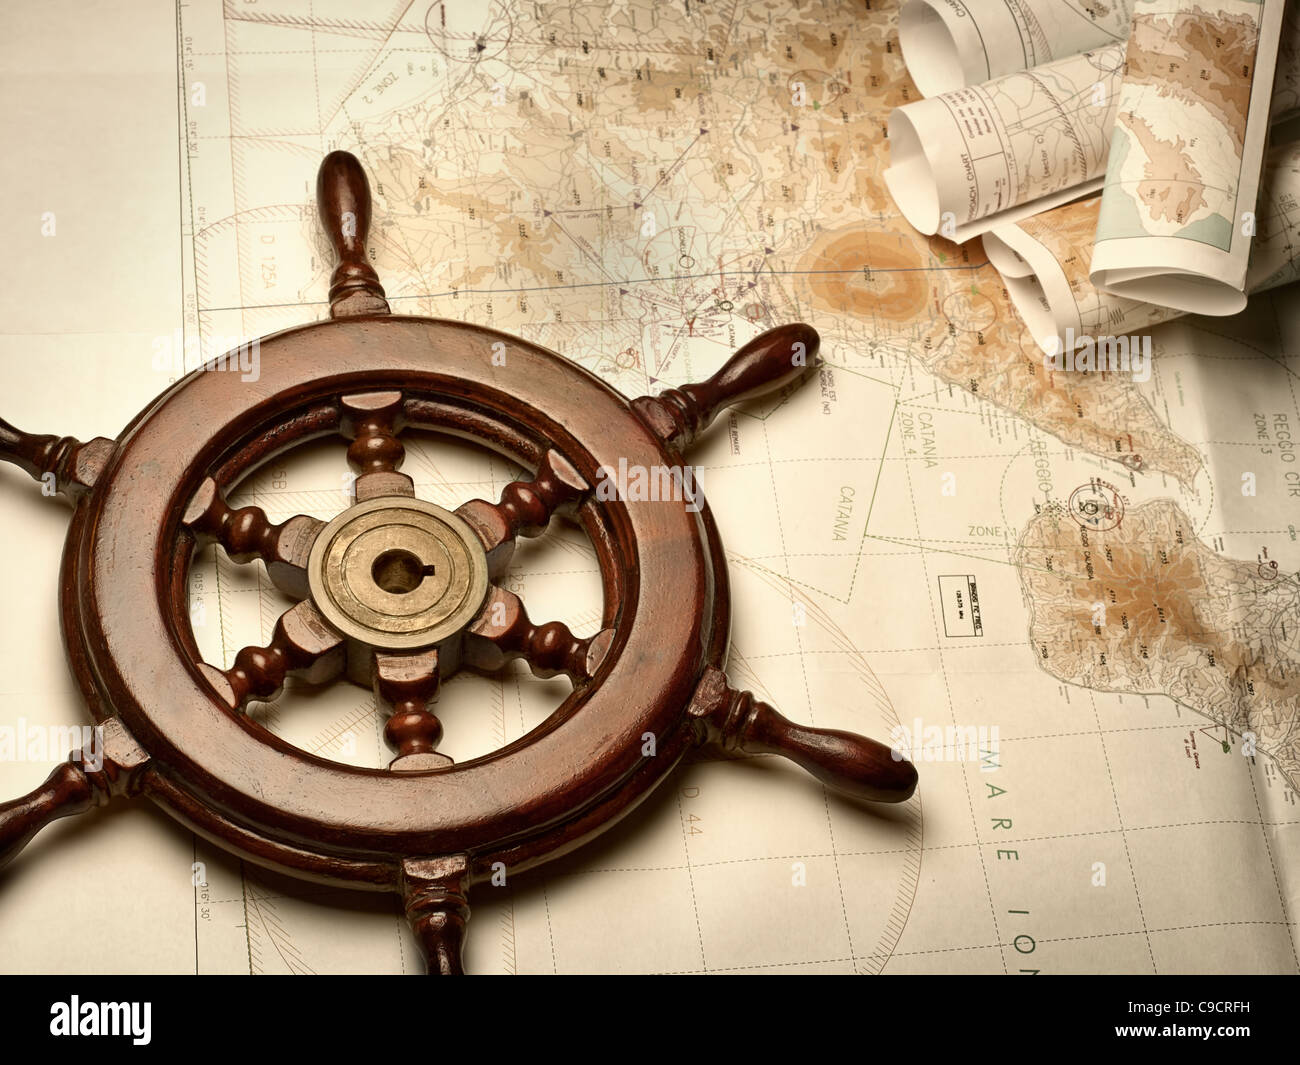 wooden helm on the navigation map,for navigation,travel,adventure themes - Stock Image